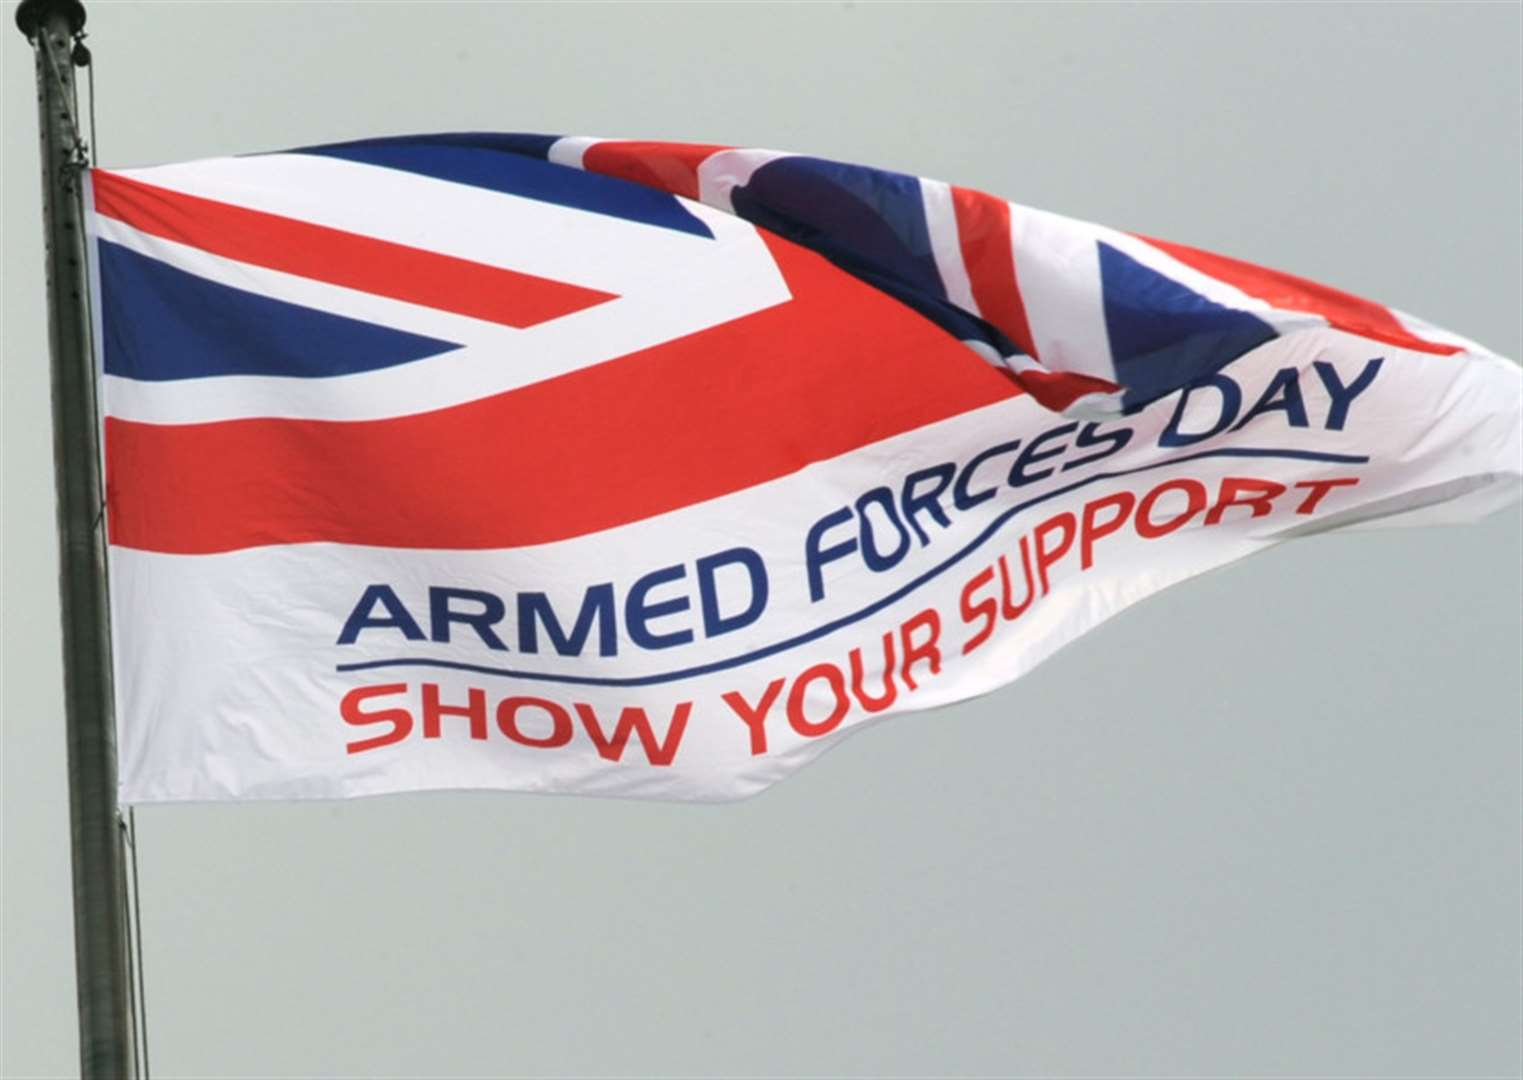 WHAT'S ON: Armed Forces Day event will be held at Allington's Arena UK showground